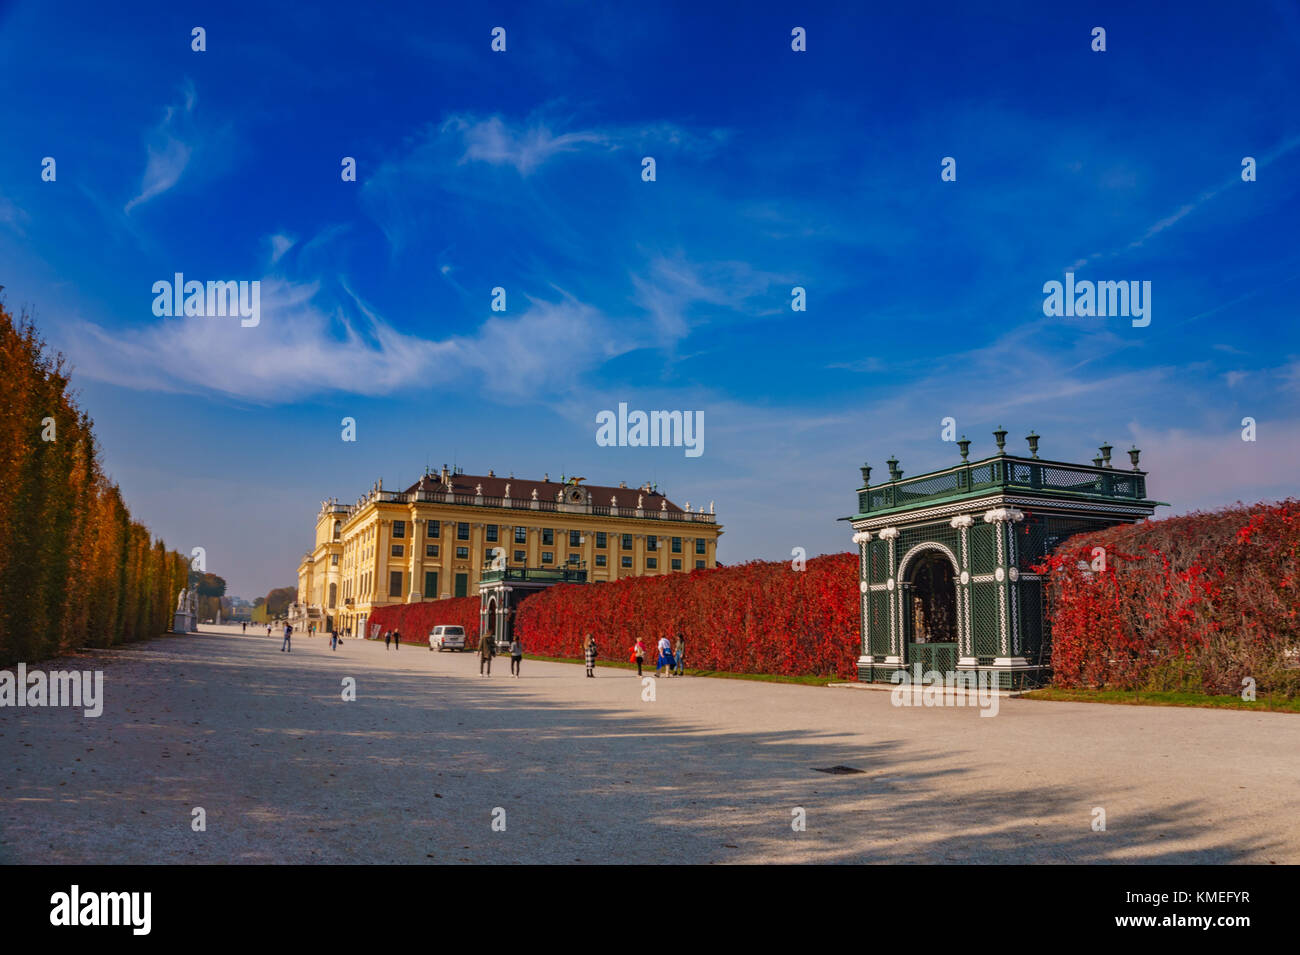 Surrounded area and gardens around the famous Schonbrunn Palace Vienna in Austria, Europe. Stock Photo